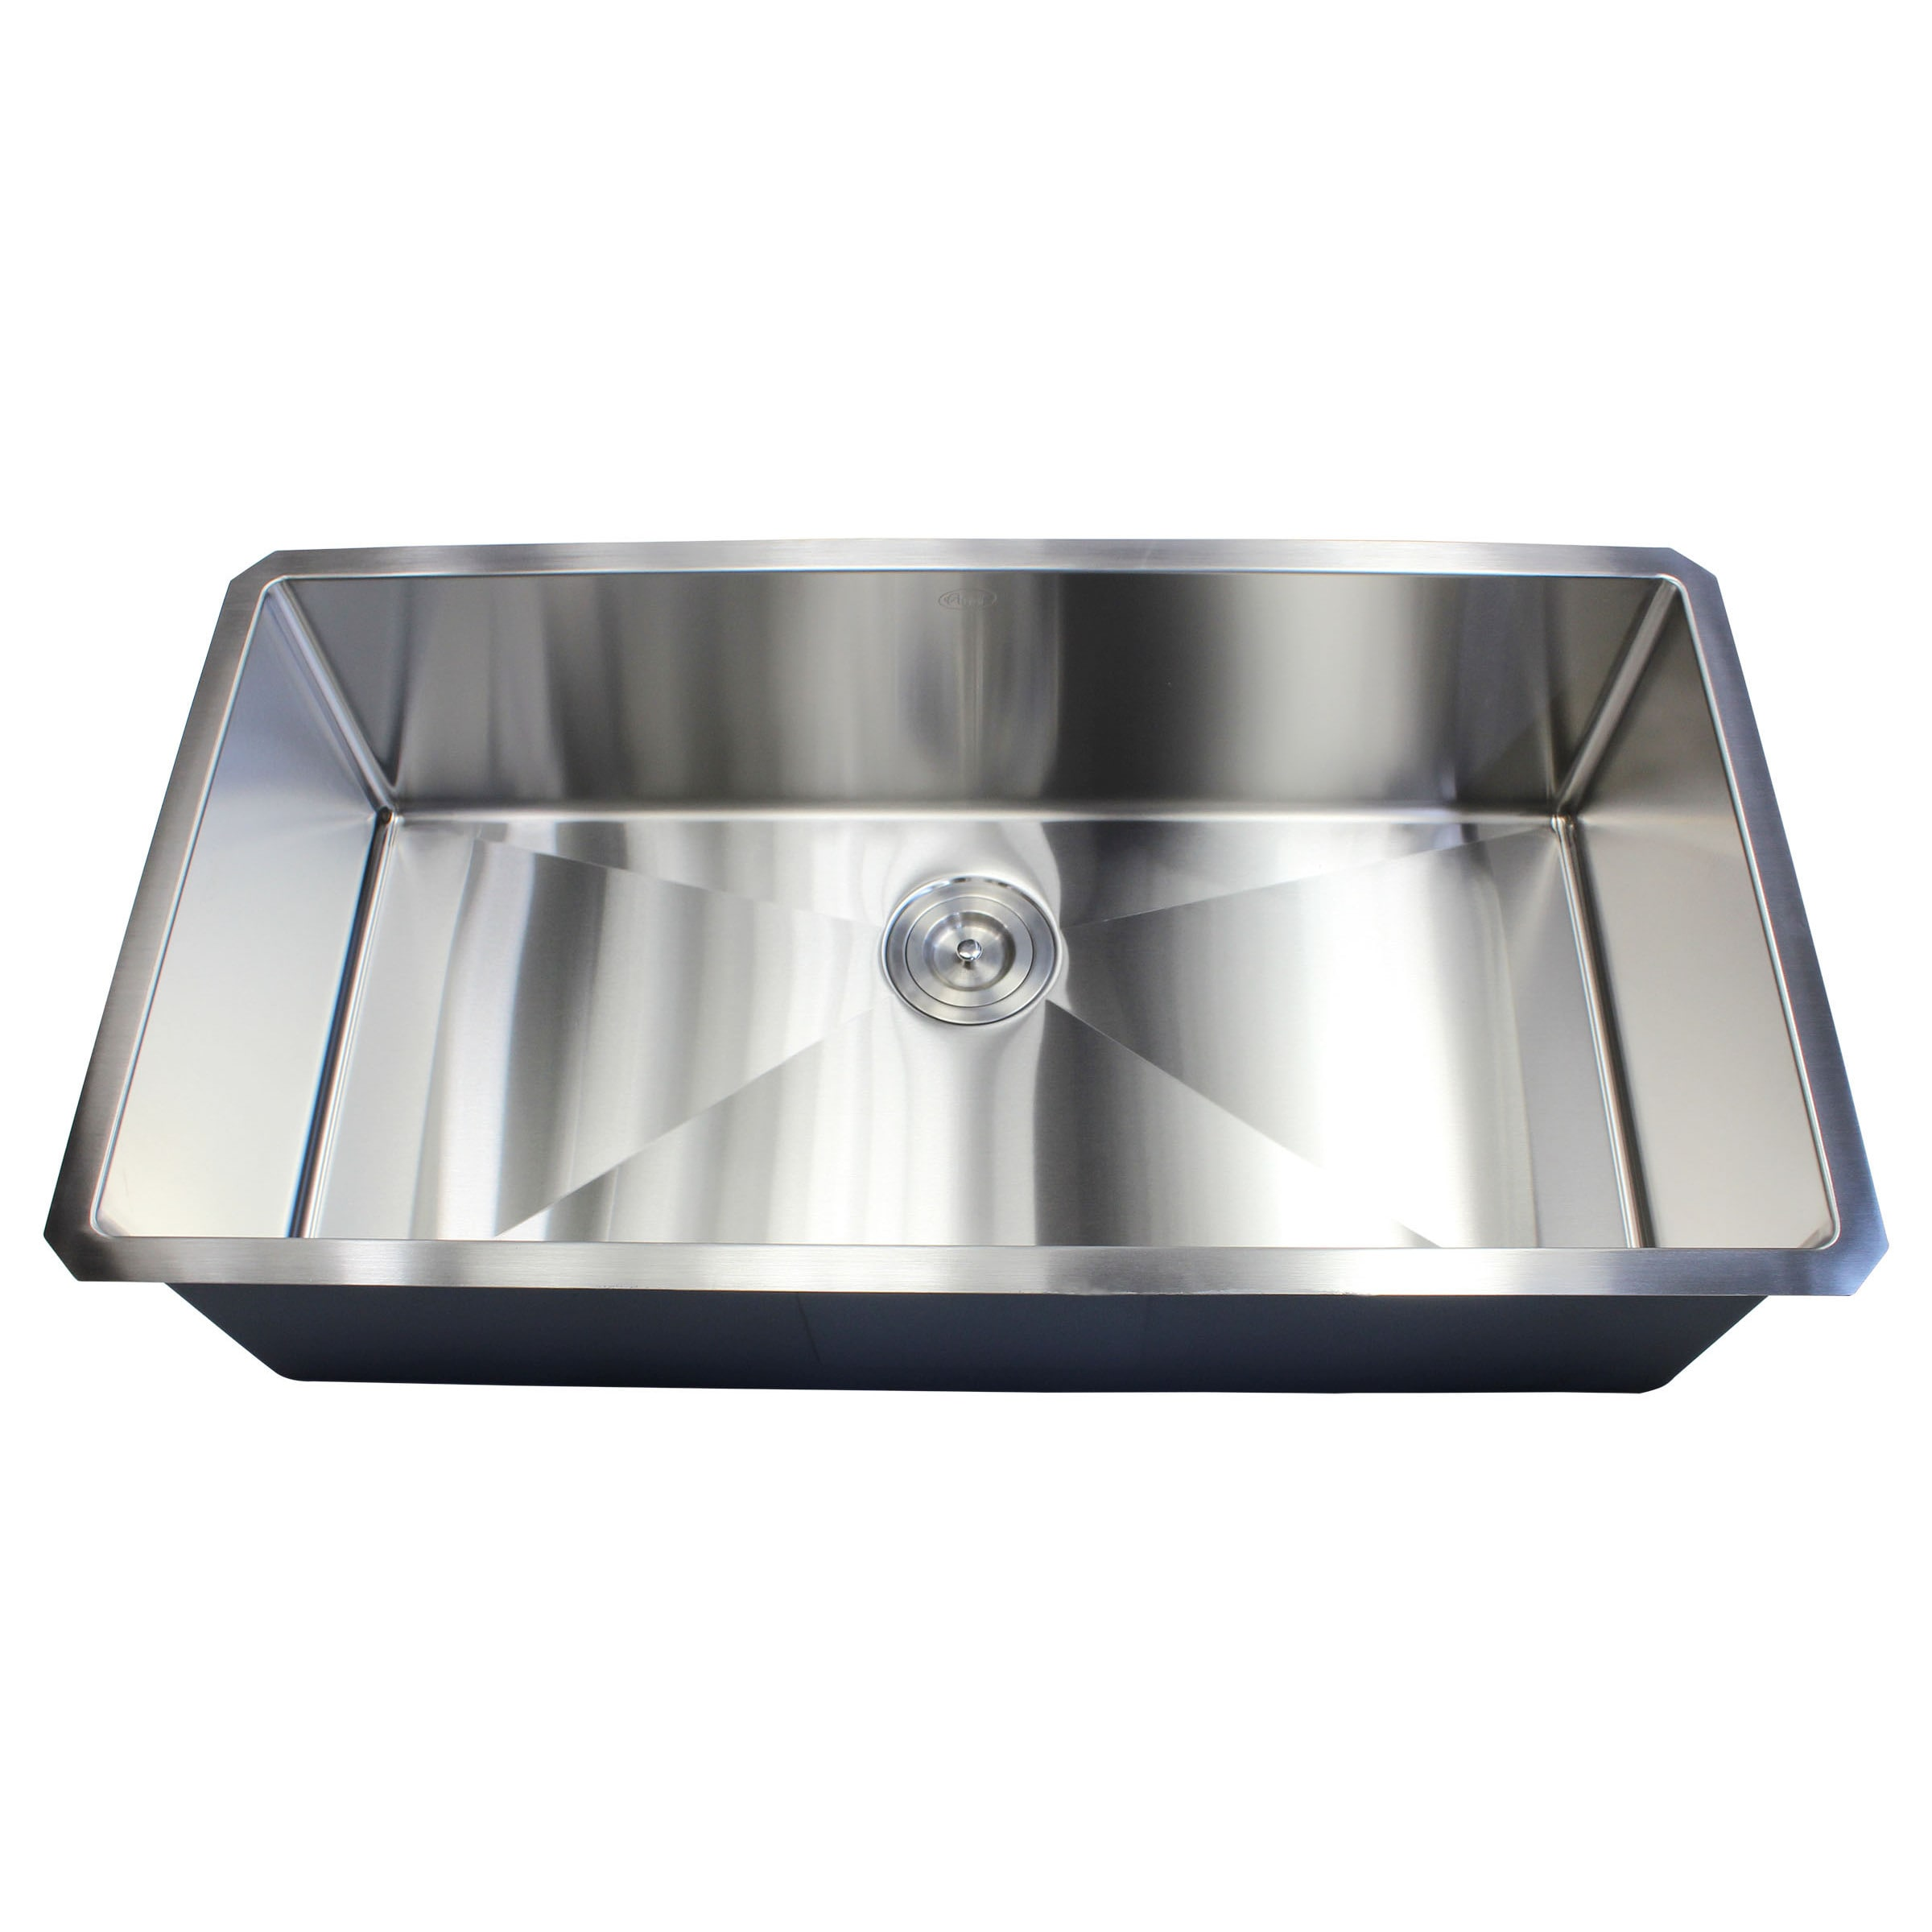 Exceptional Ariel 36 Inch Stainless Steel Single Bowl 15mm